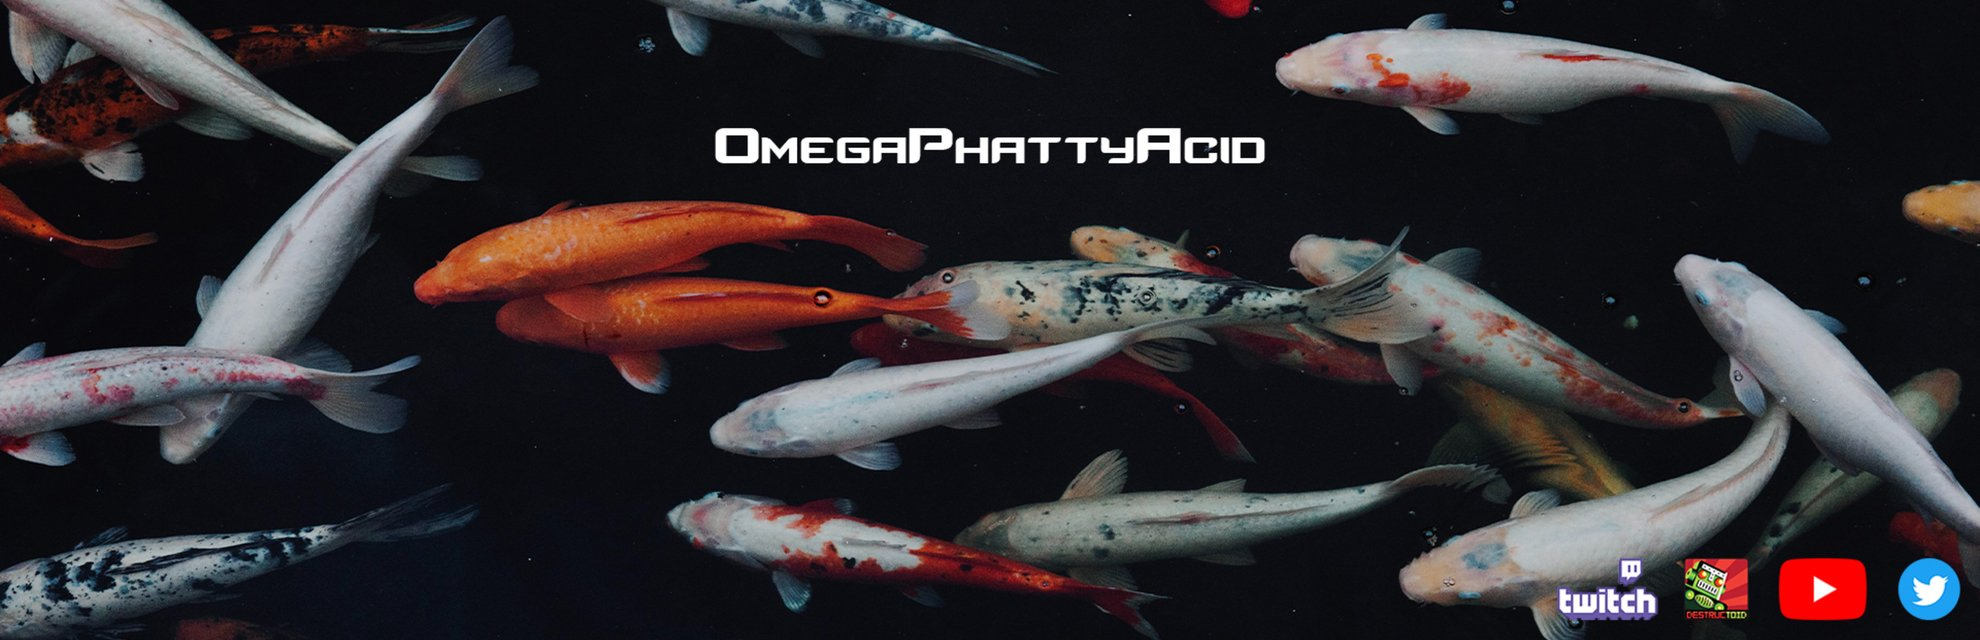 OmegaPhattyAcid blog header photo